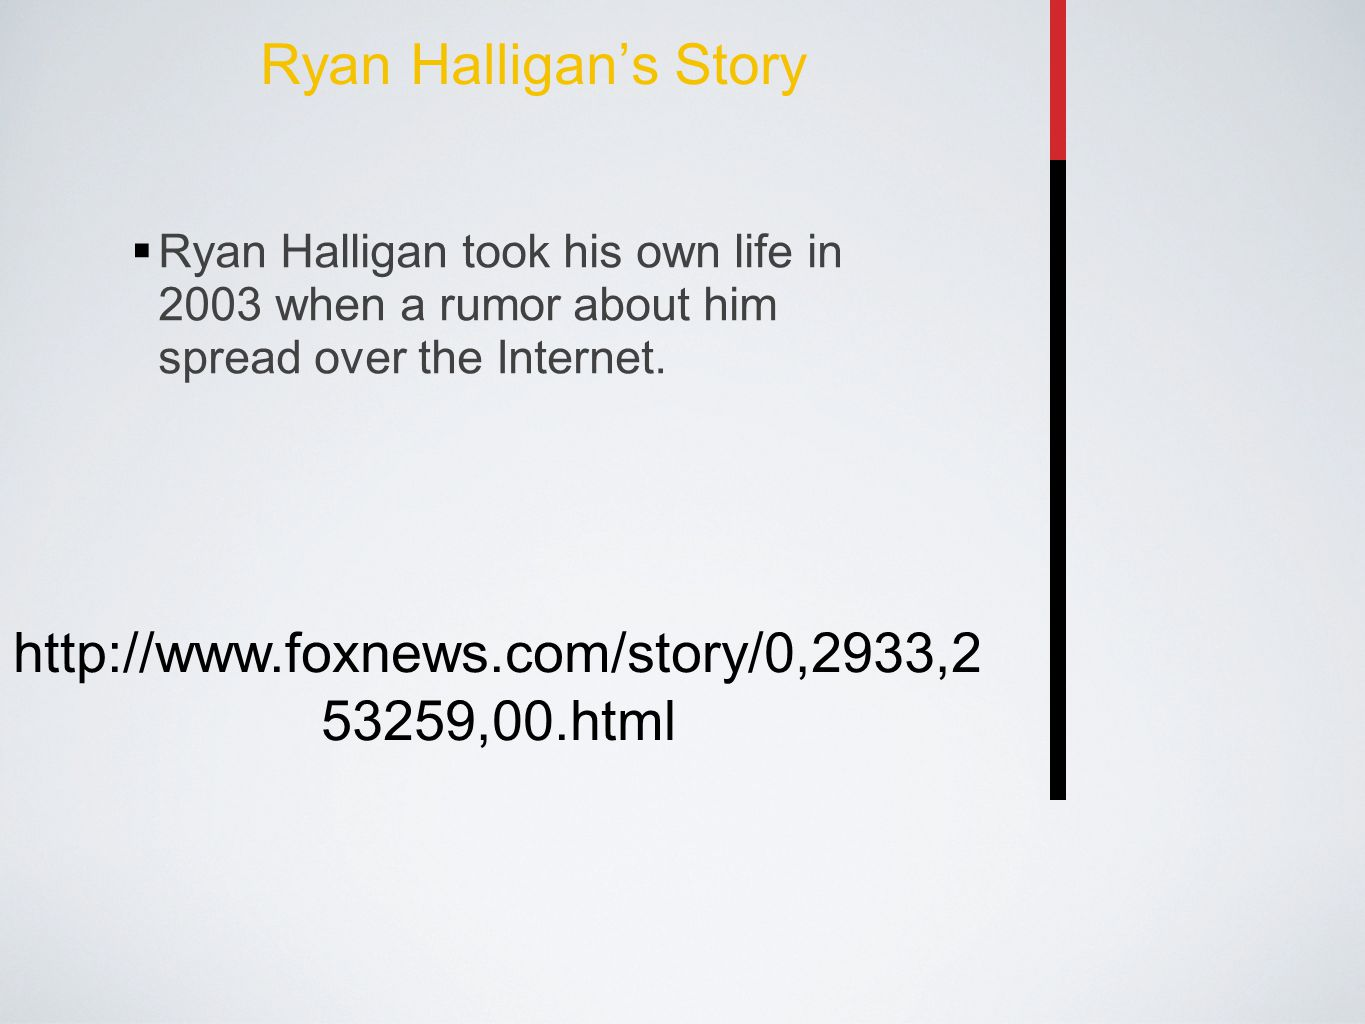 Ryan Halligan's Story  Ryan Halligan took his own life in 2003 when a rumor about him spread over the Internet. http://www.foxnews.com/story/0,2933,2